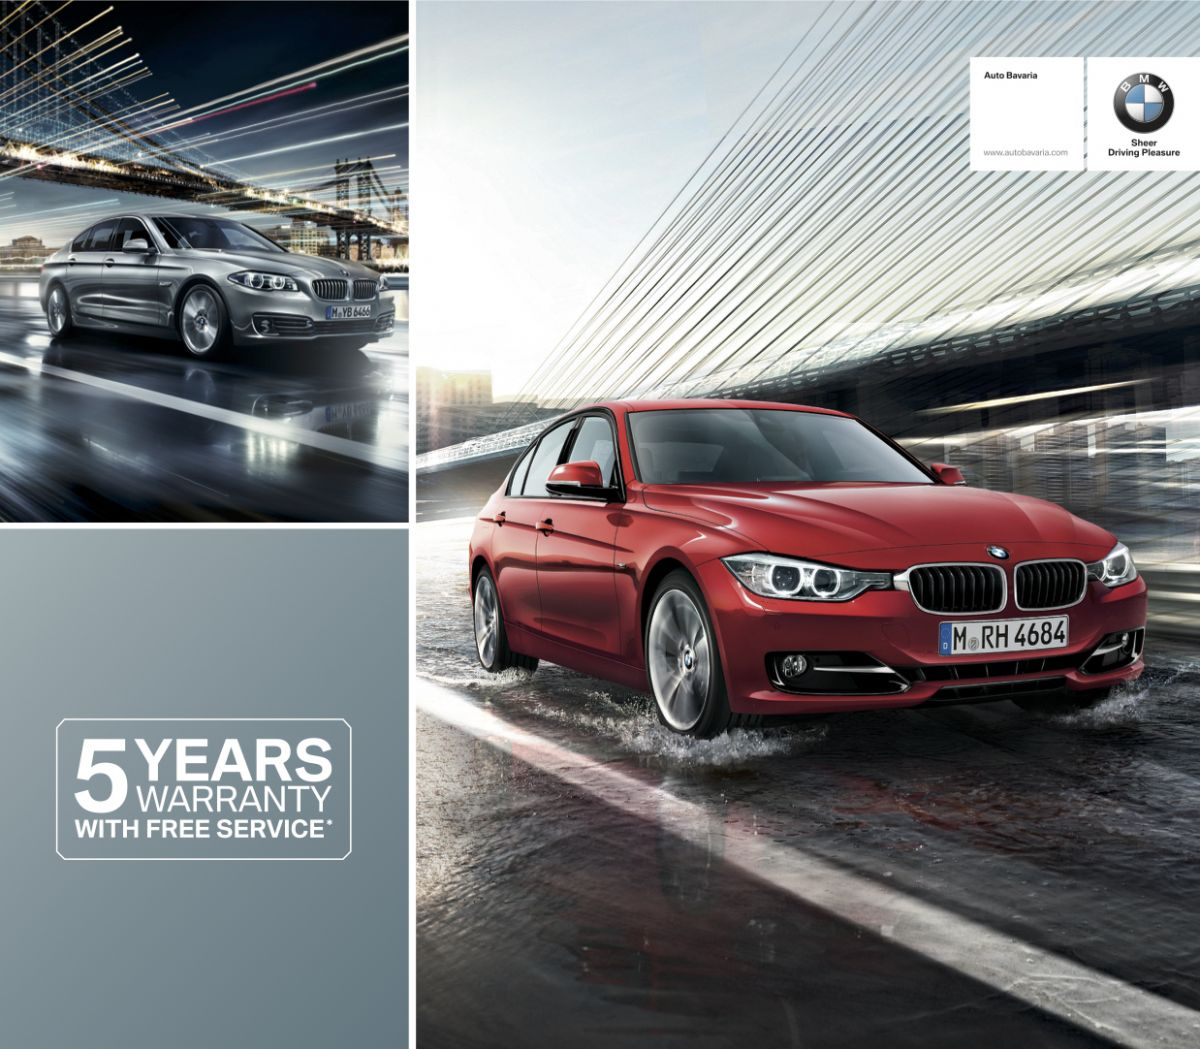 Bmw Years: AD: Pre-raya Specials At Auto Bavaria This Weekend